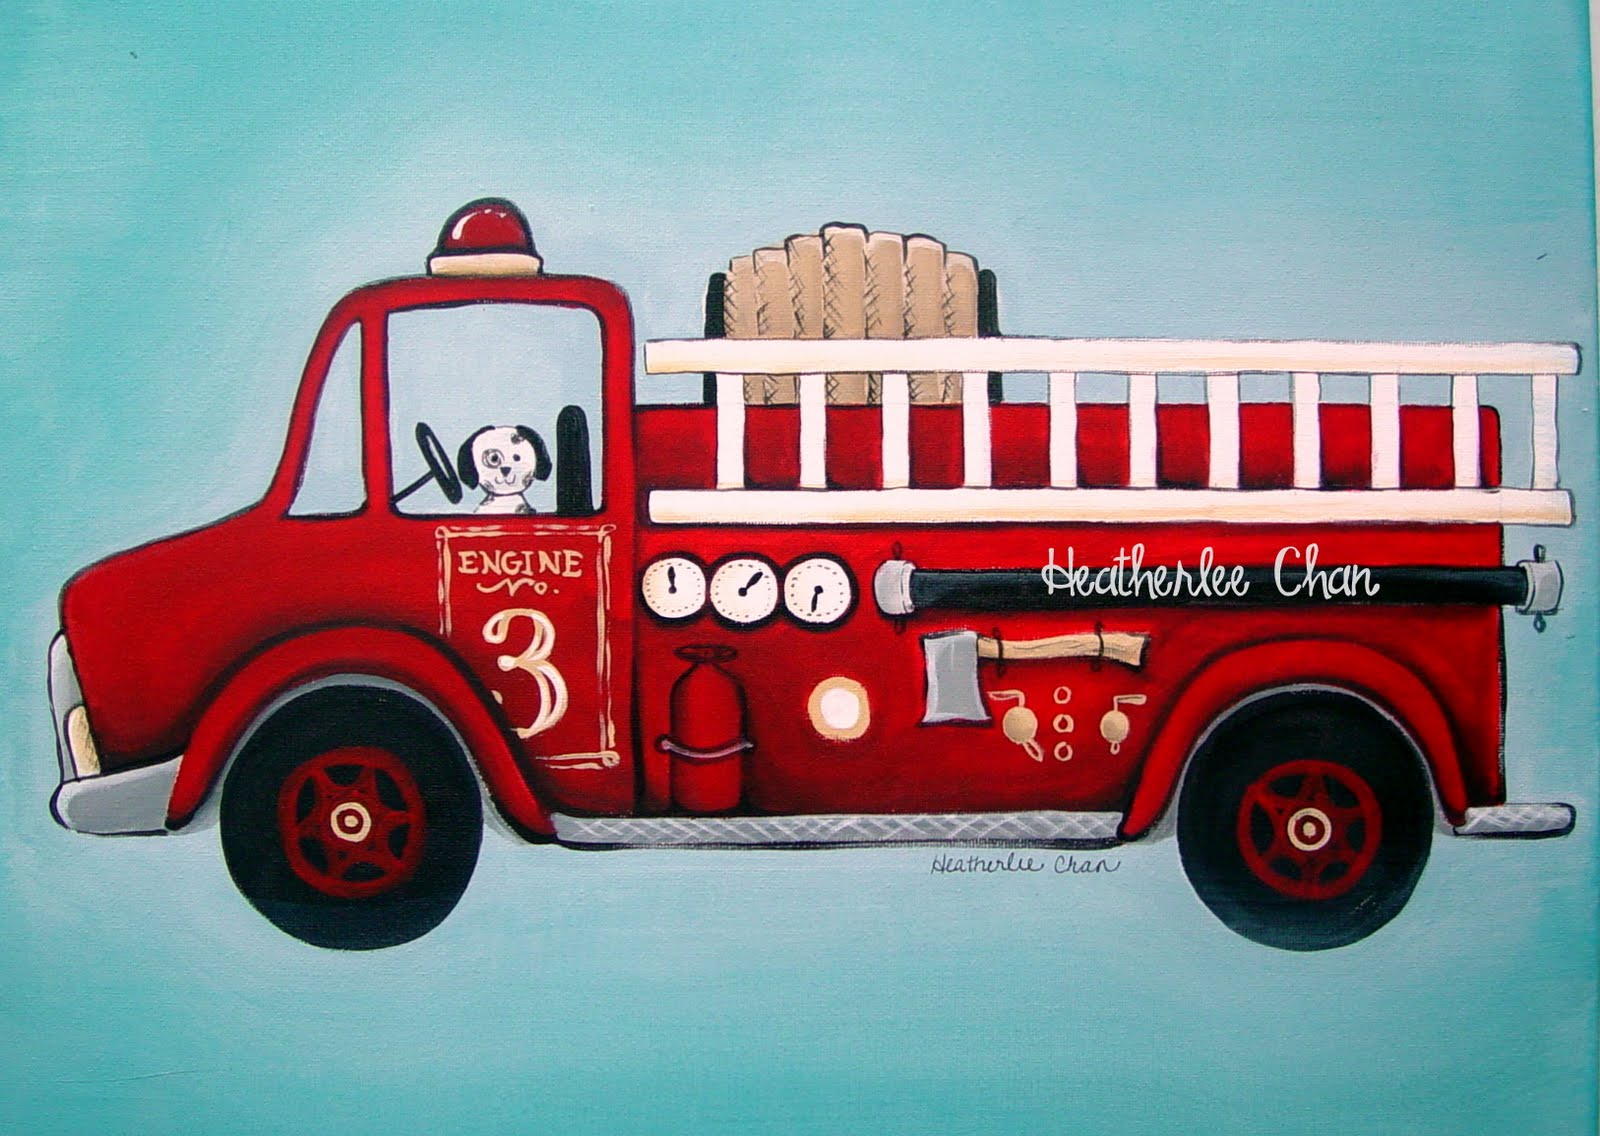 Fire truck Heather leeChan